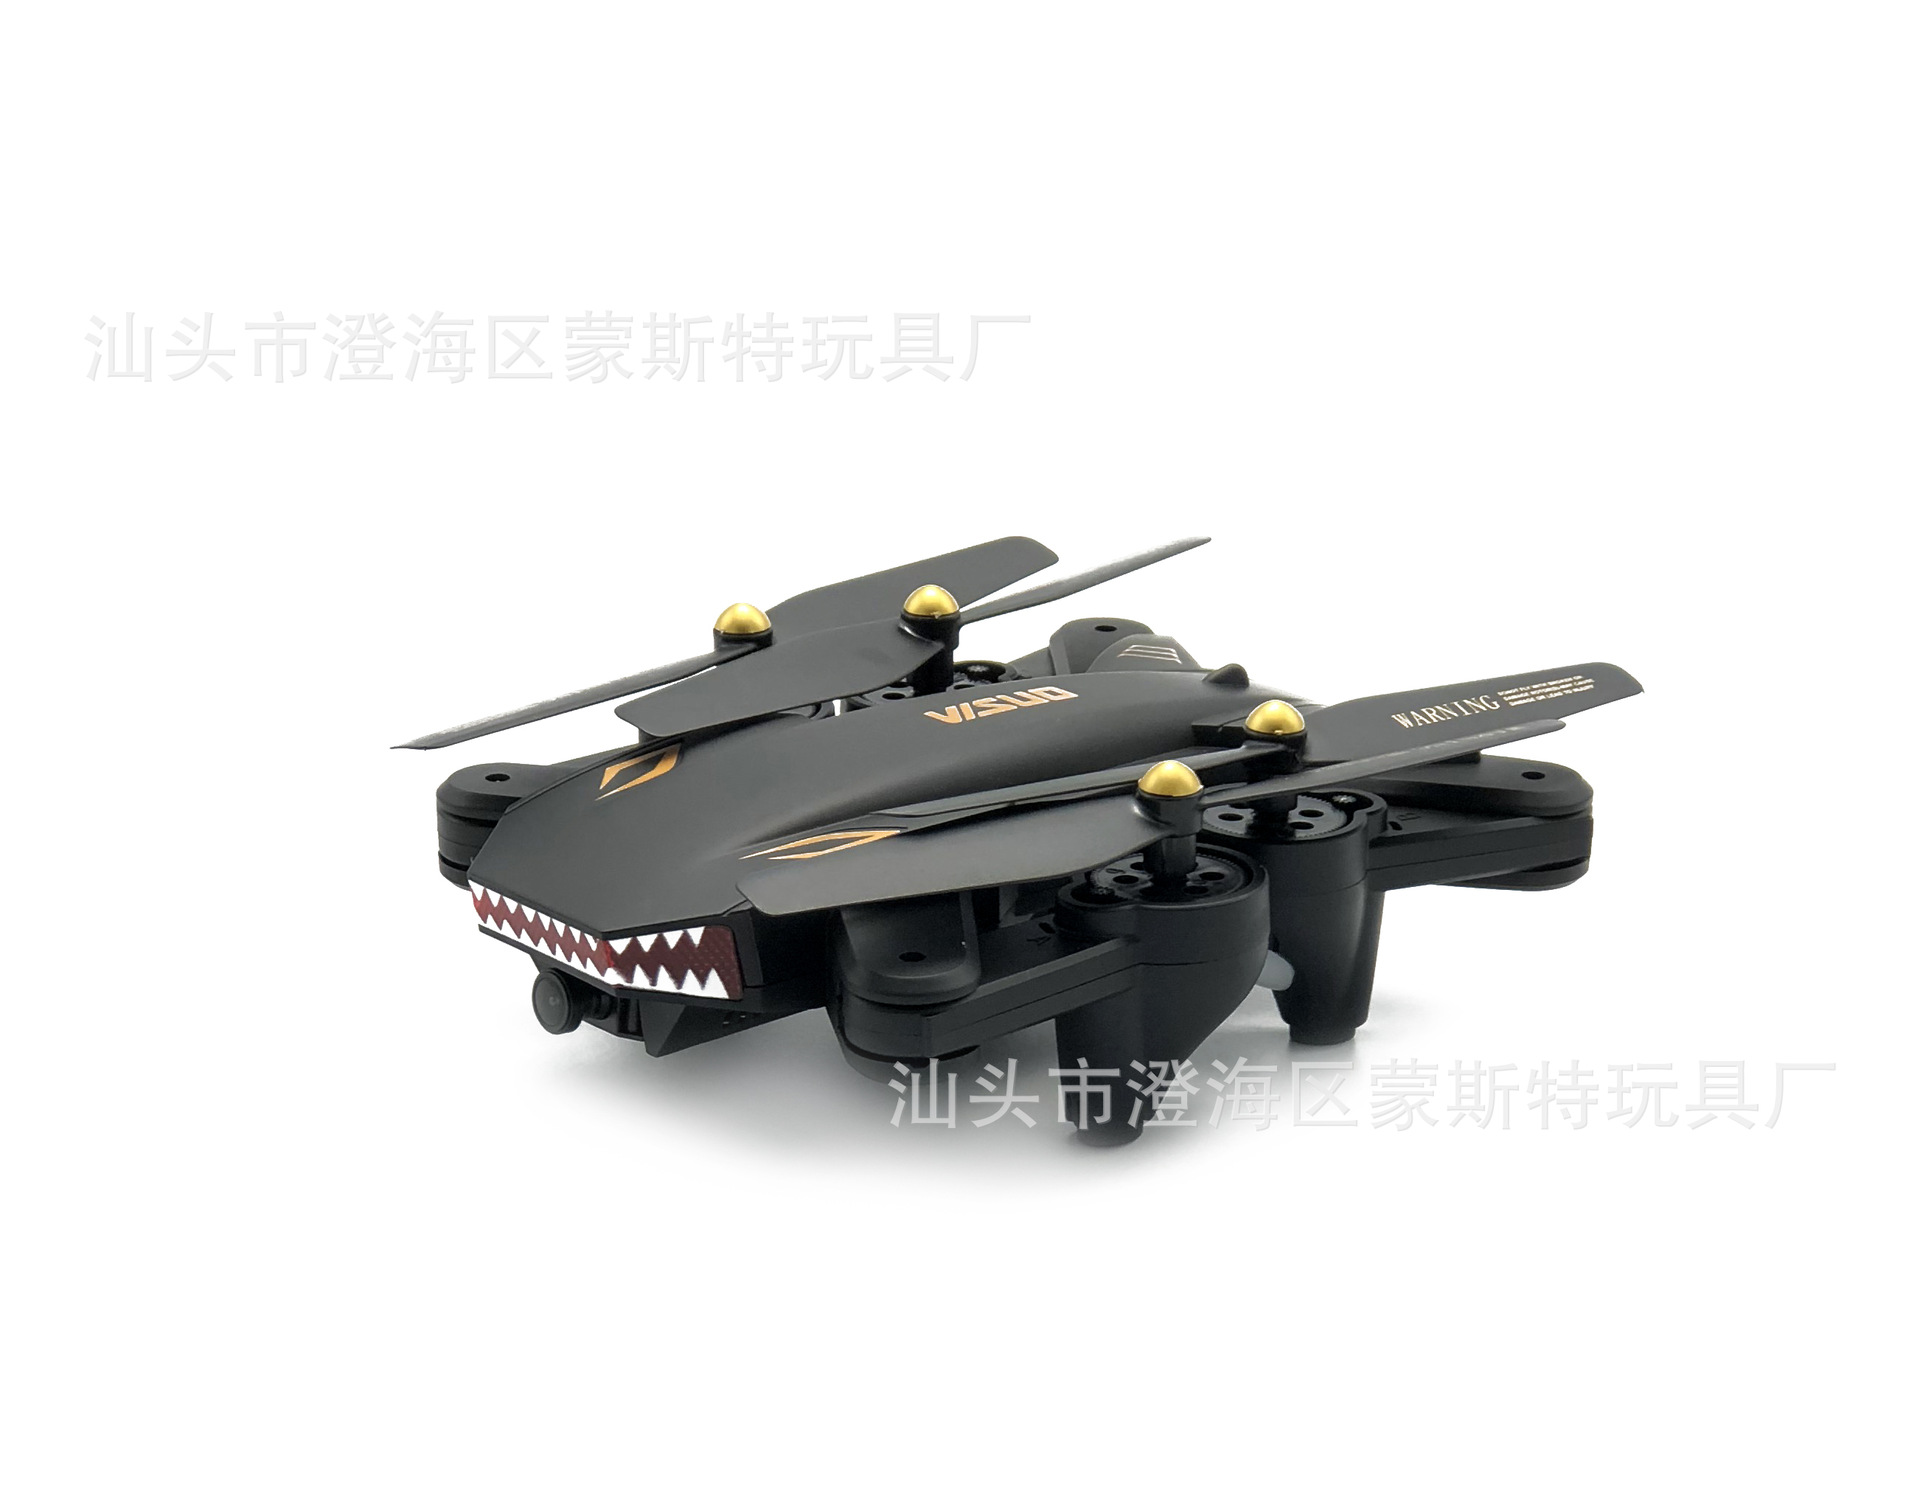 Xs809s Shark Folding Aerial Photography Quadcopter WiFi 200W Wide Angle Lens Model Unmanned Aerial Vehicle